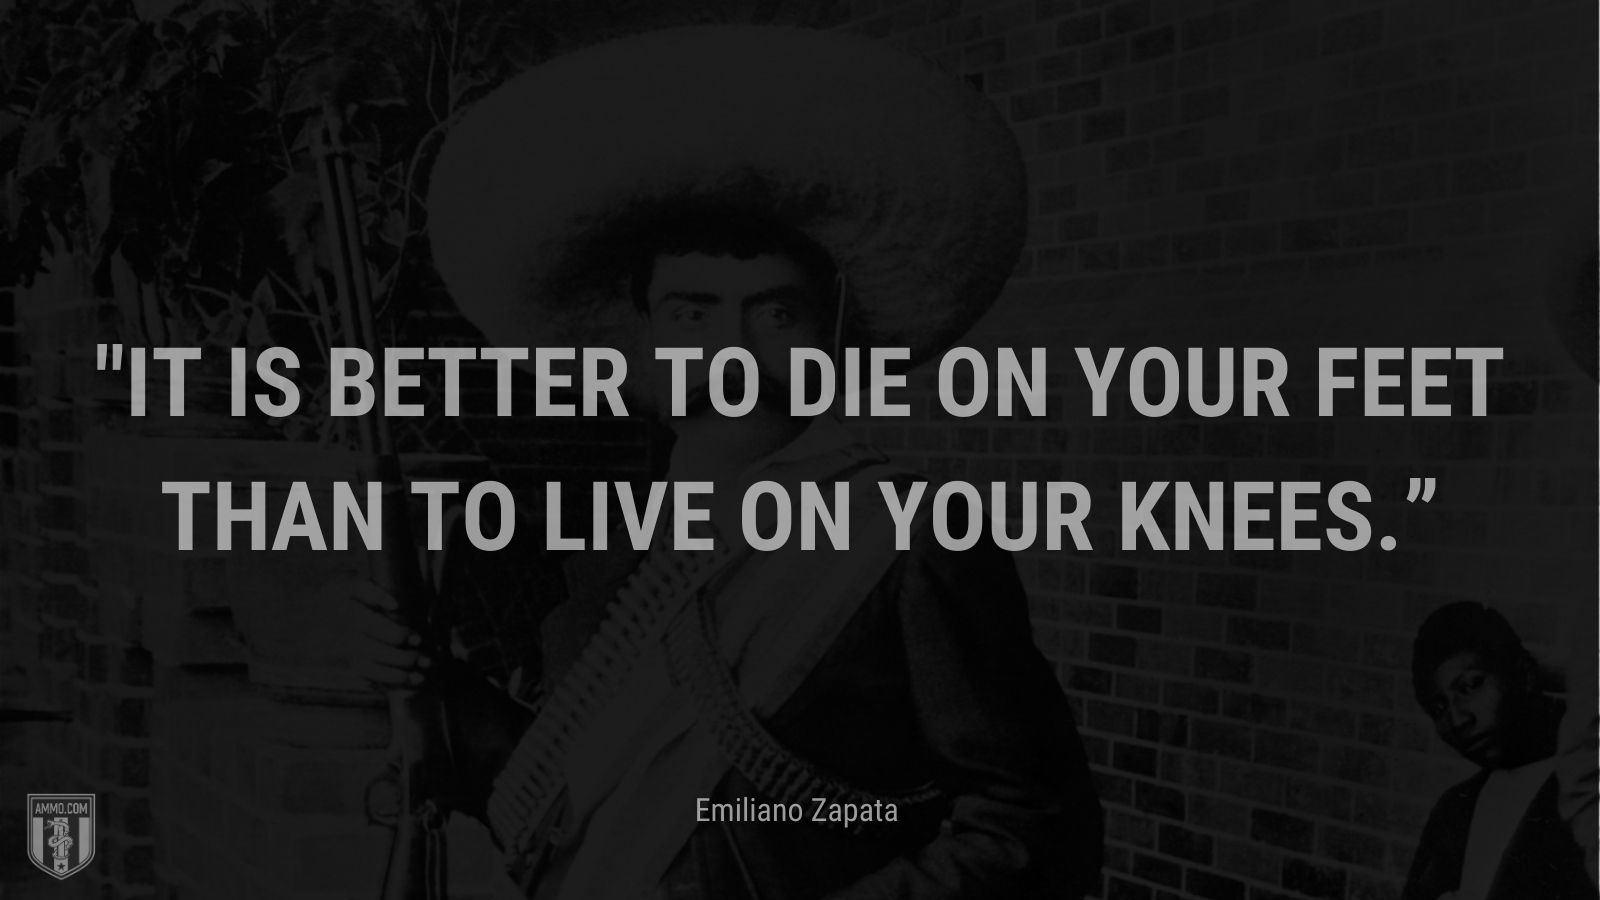 """""""It is better to die on your feet than to live on your knees."""" - Emiliano Zapata"""